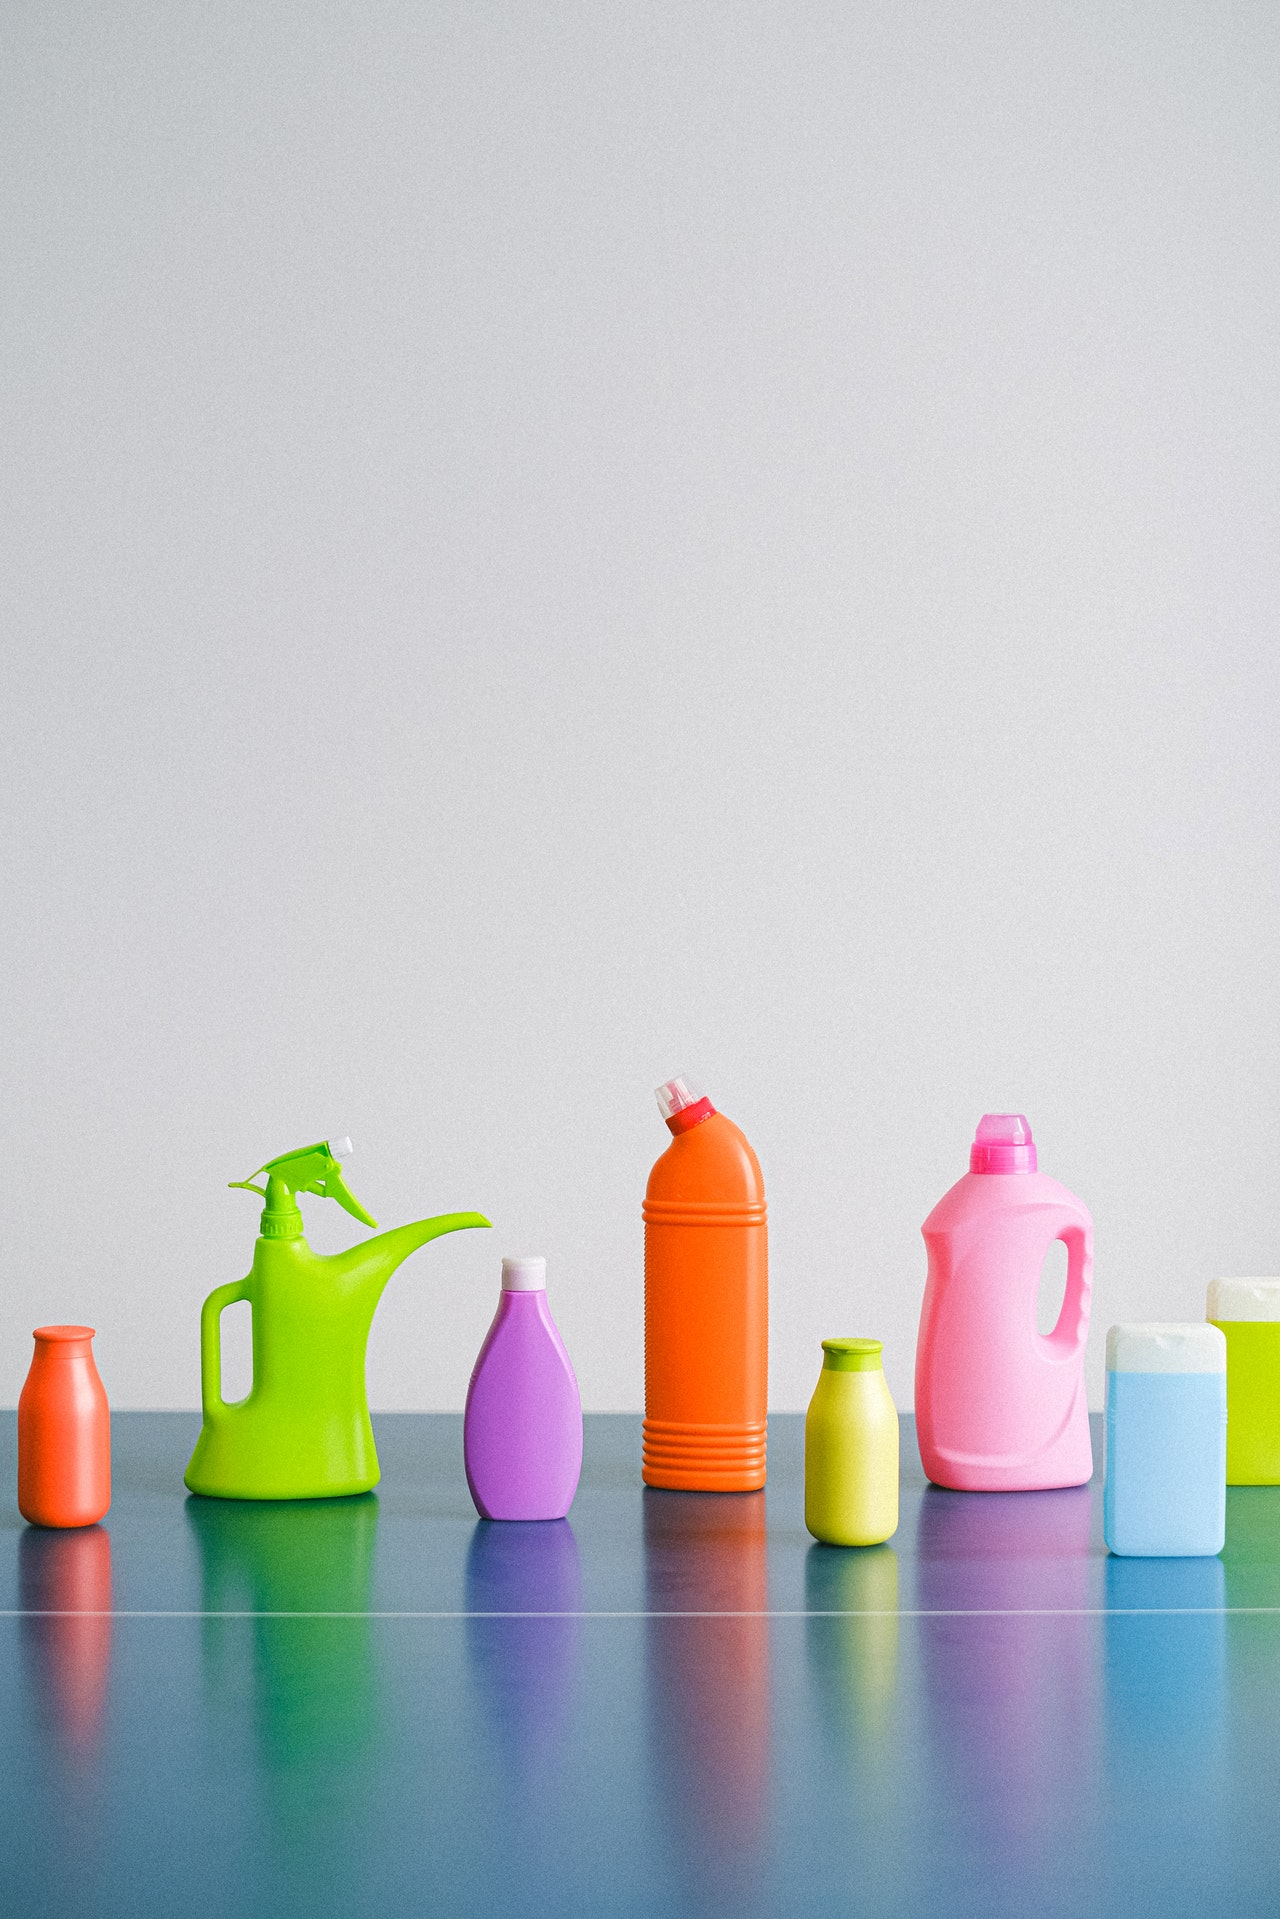 brightly colored laundry and cleaning product bottles to donate to food pantry